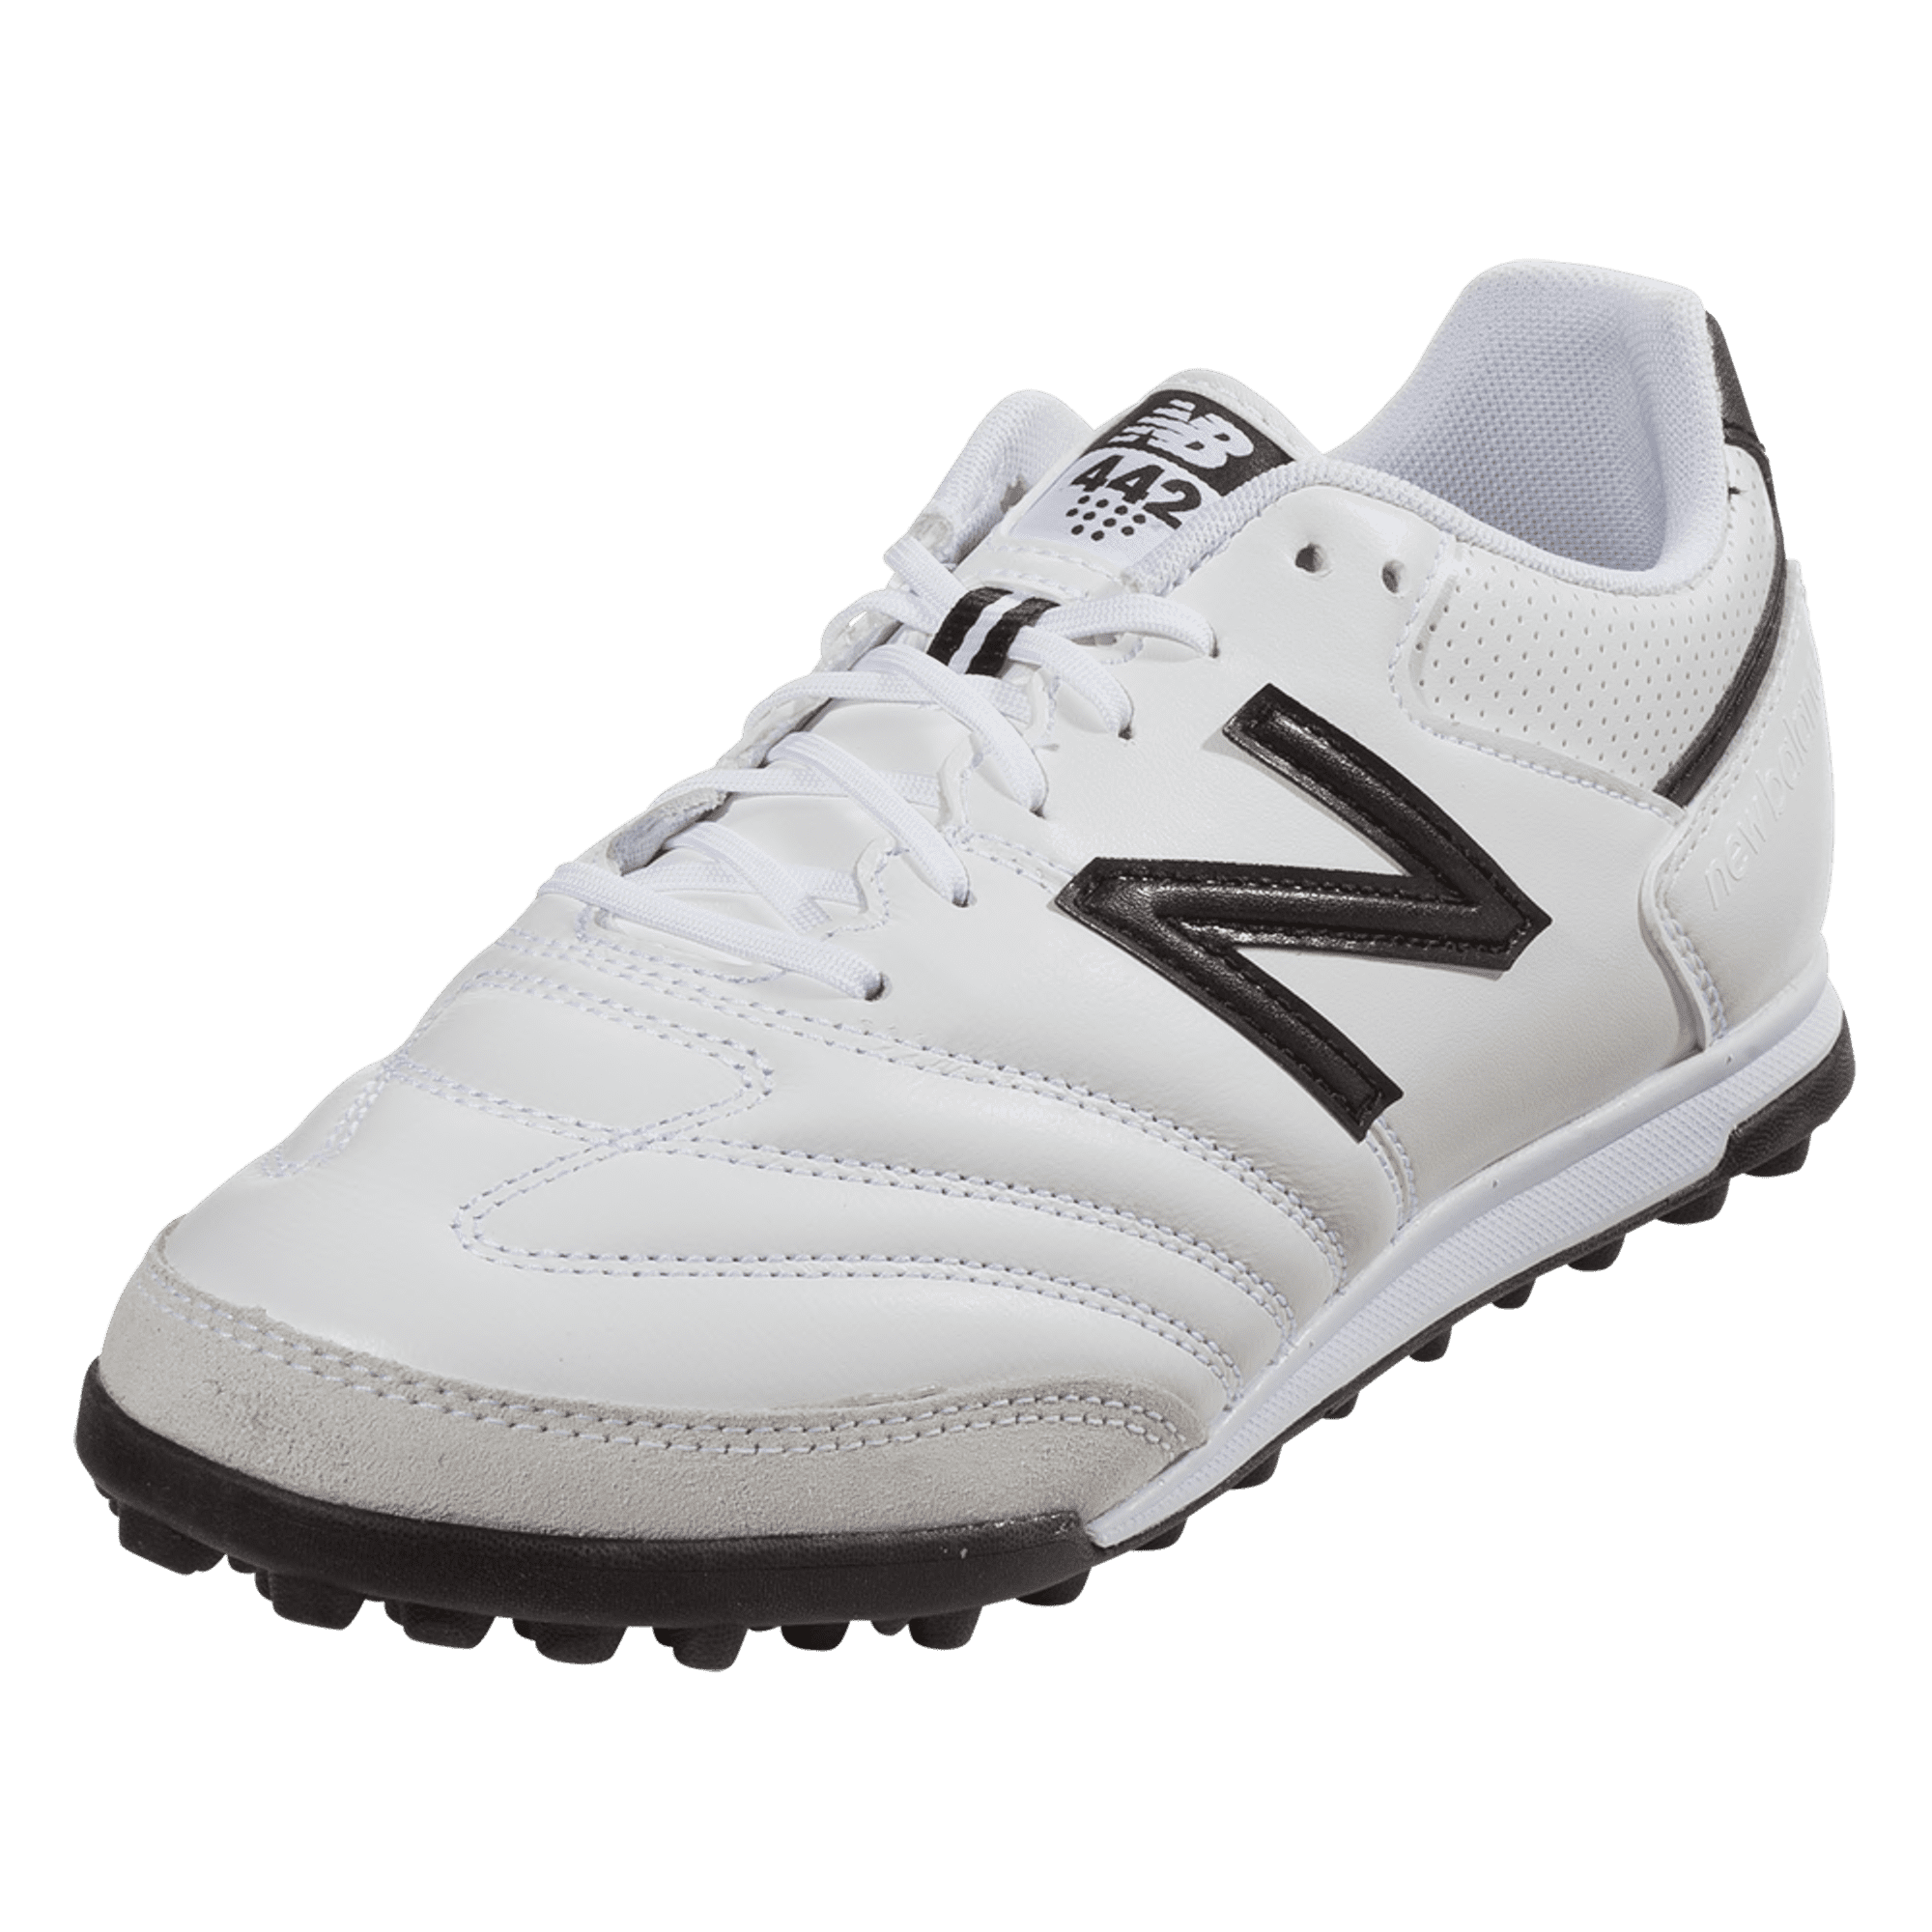 New Balance 442 Team TF Wide Artificial Turf Shoe - White/Black